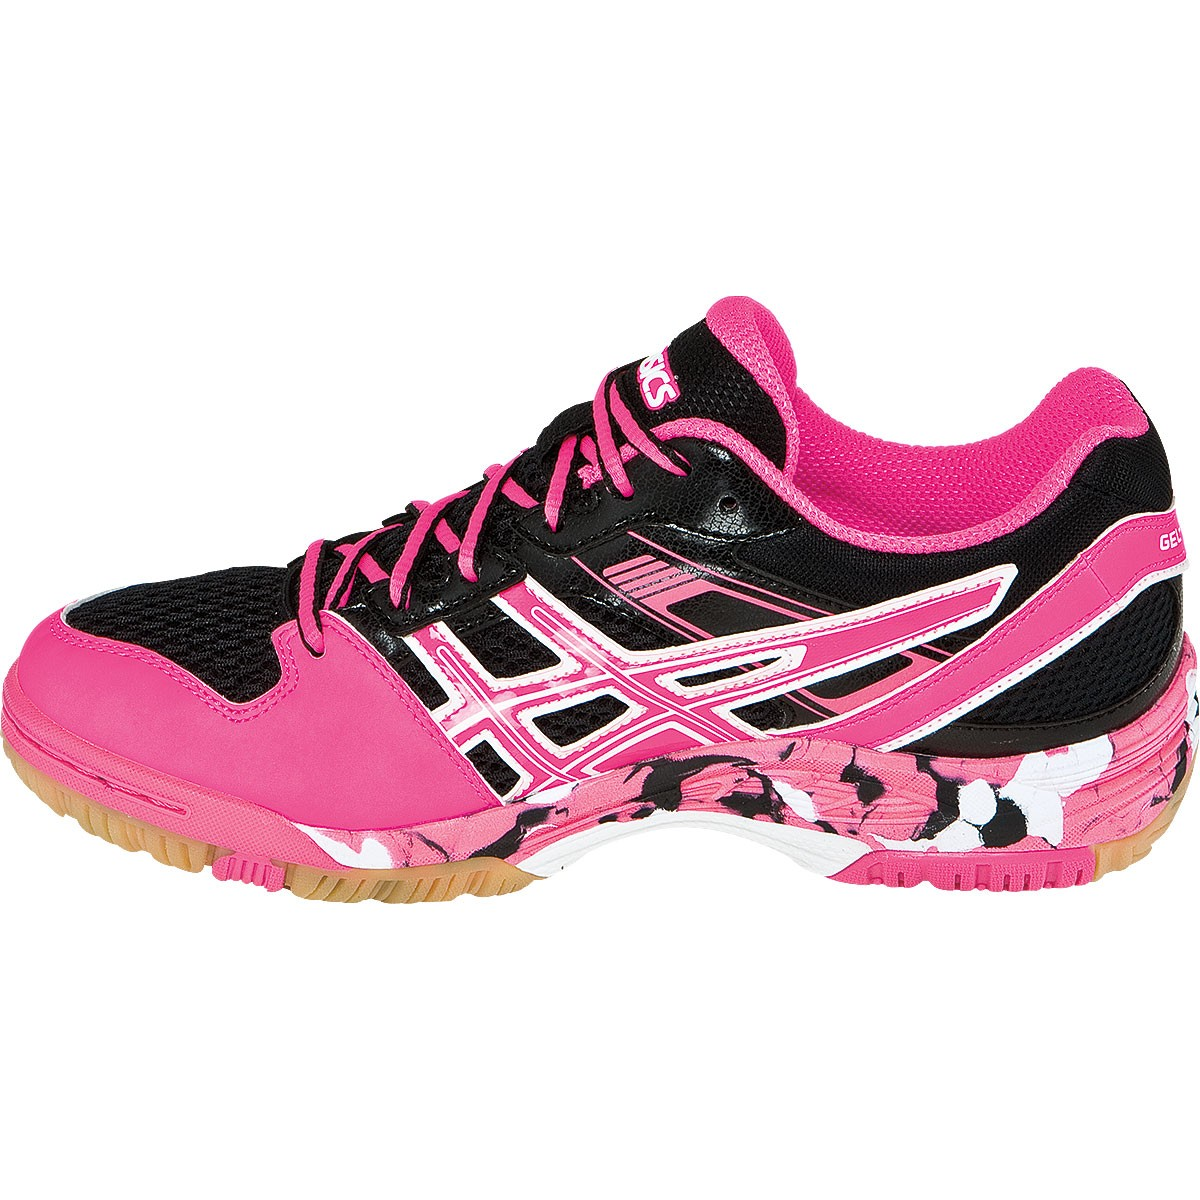 Hot Pink Mizuno Volleyball Shoes - Best Shoes 2017